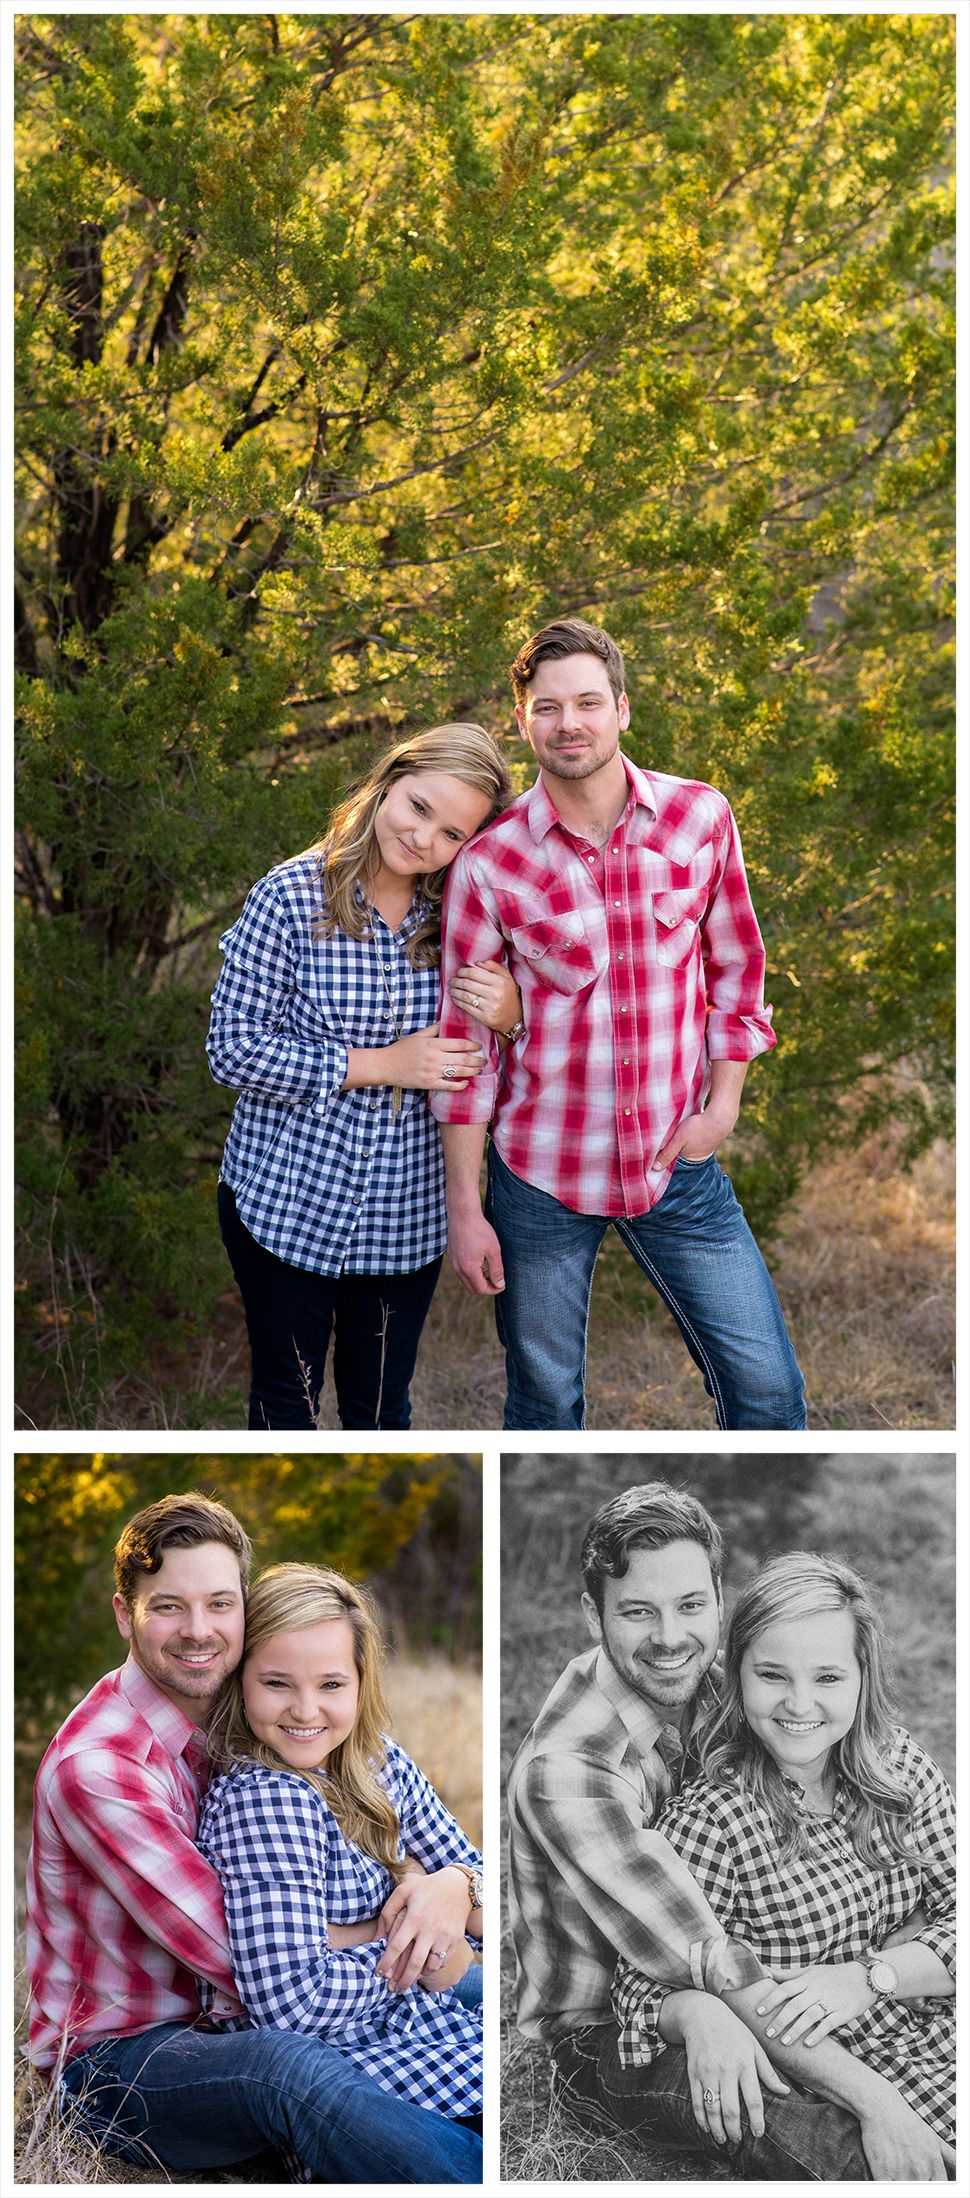 DFW Fort Worth Aledo photographer Angela Wynn photography: engagement session, cute, field, quilt, back light, gorgeous, love, styled, fun, nature, portrait ideas, beautiful, photography, creative, unique, couples ideas, engagements, young love, classy,